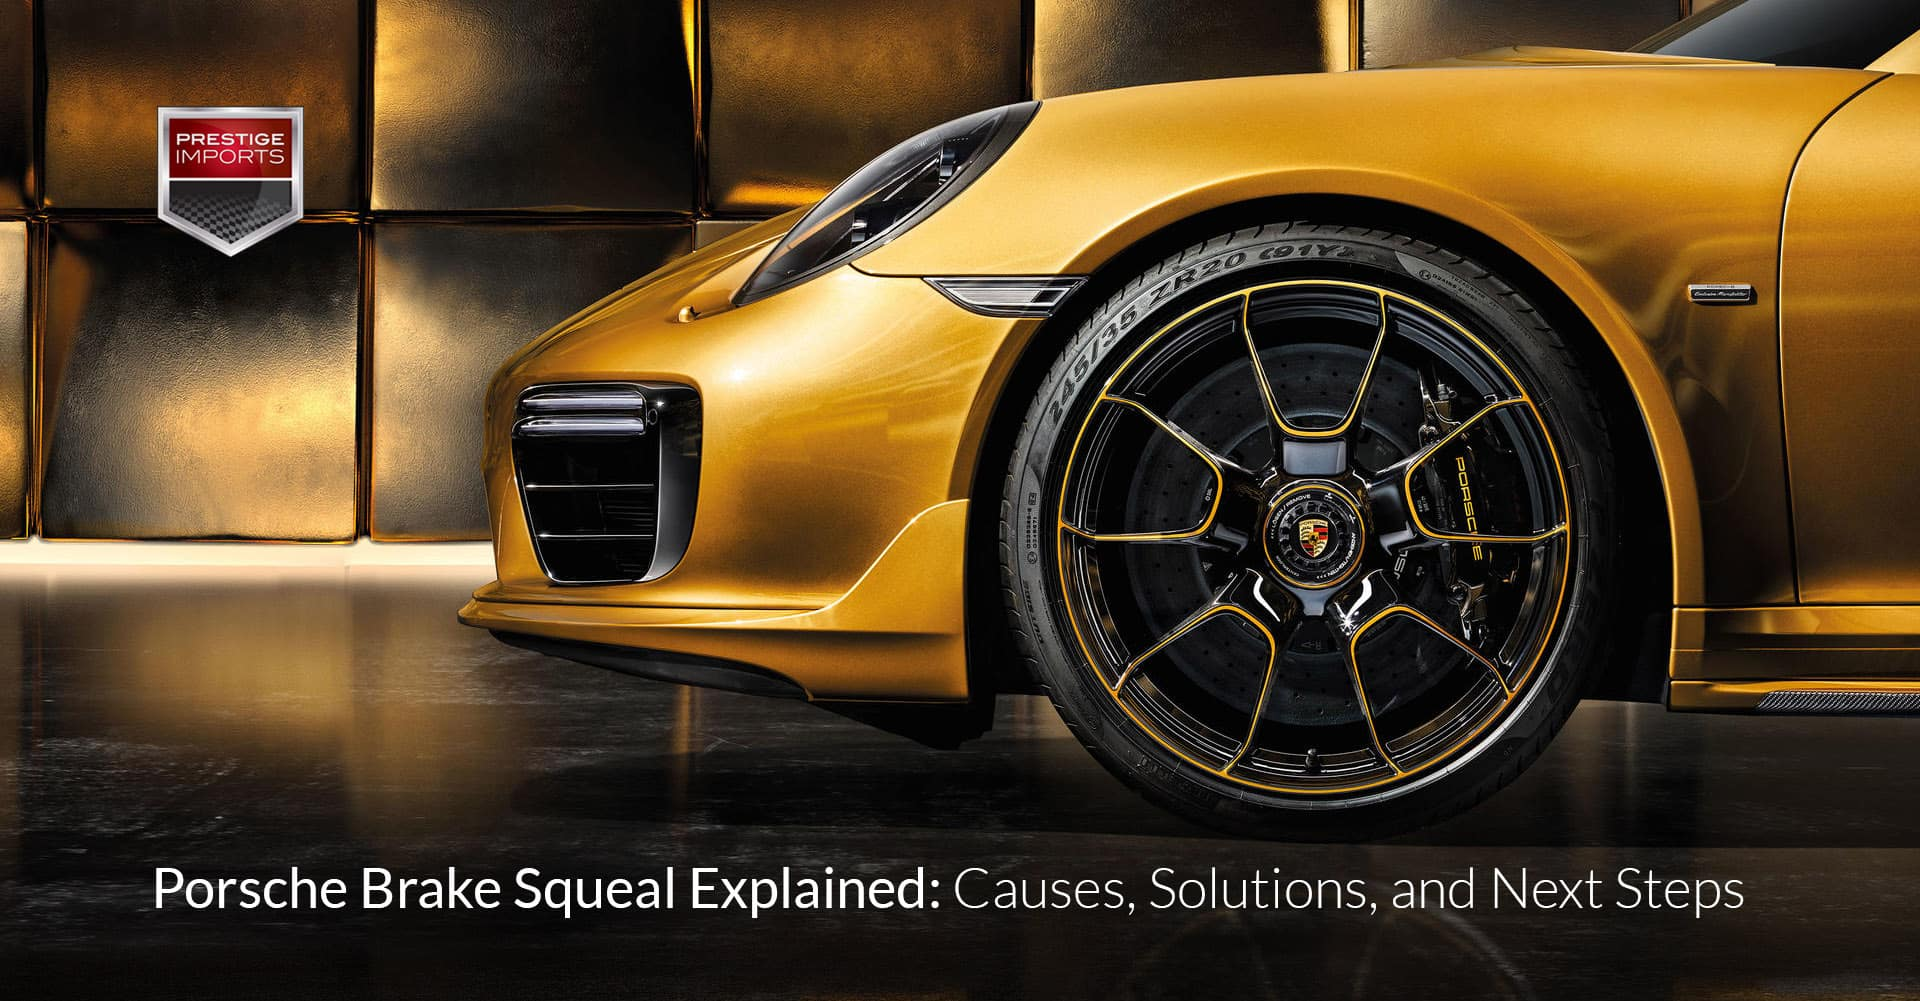 Porsche Brake Squeal Explained: Causes, Solutions, and Next